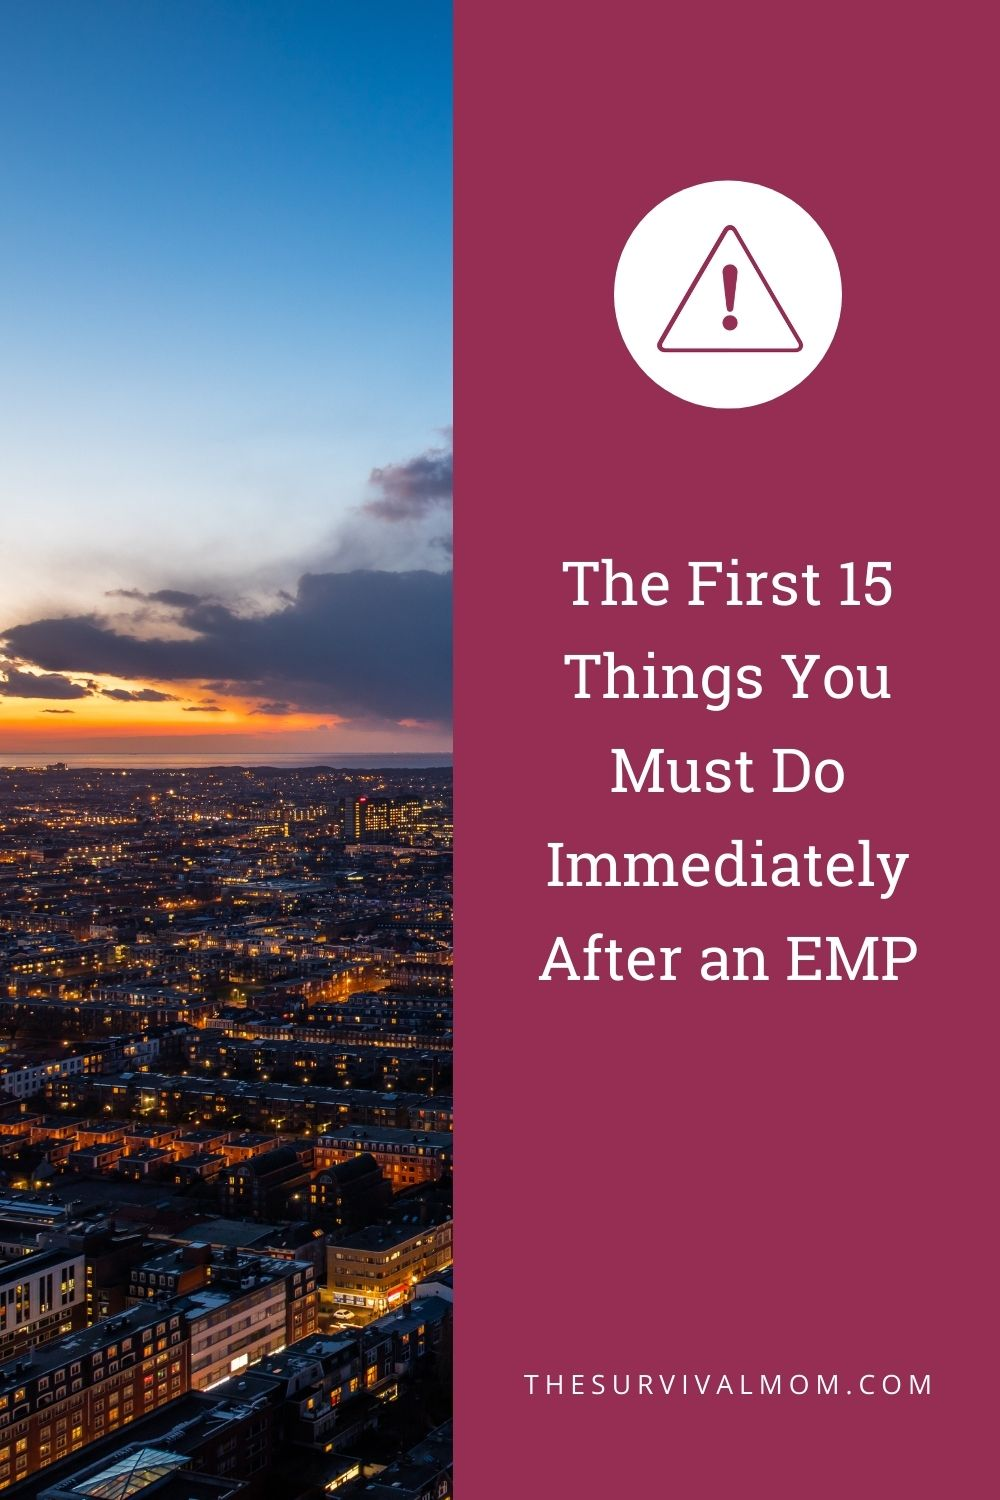 The First 15 Things You Must Do Immediately After an EMP via The Survival Mom